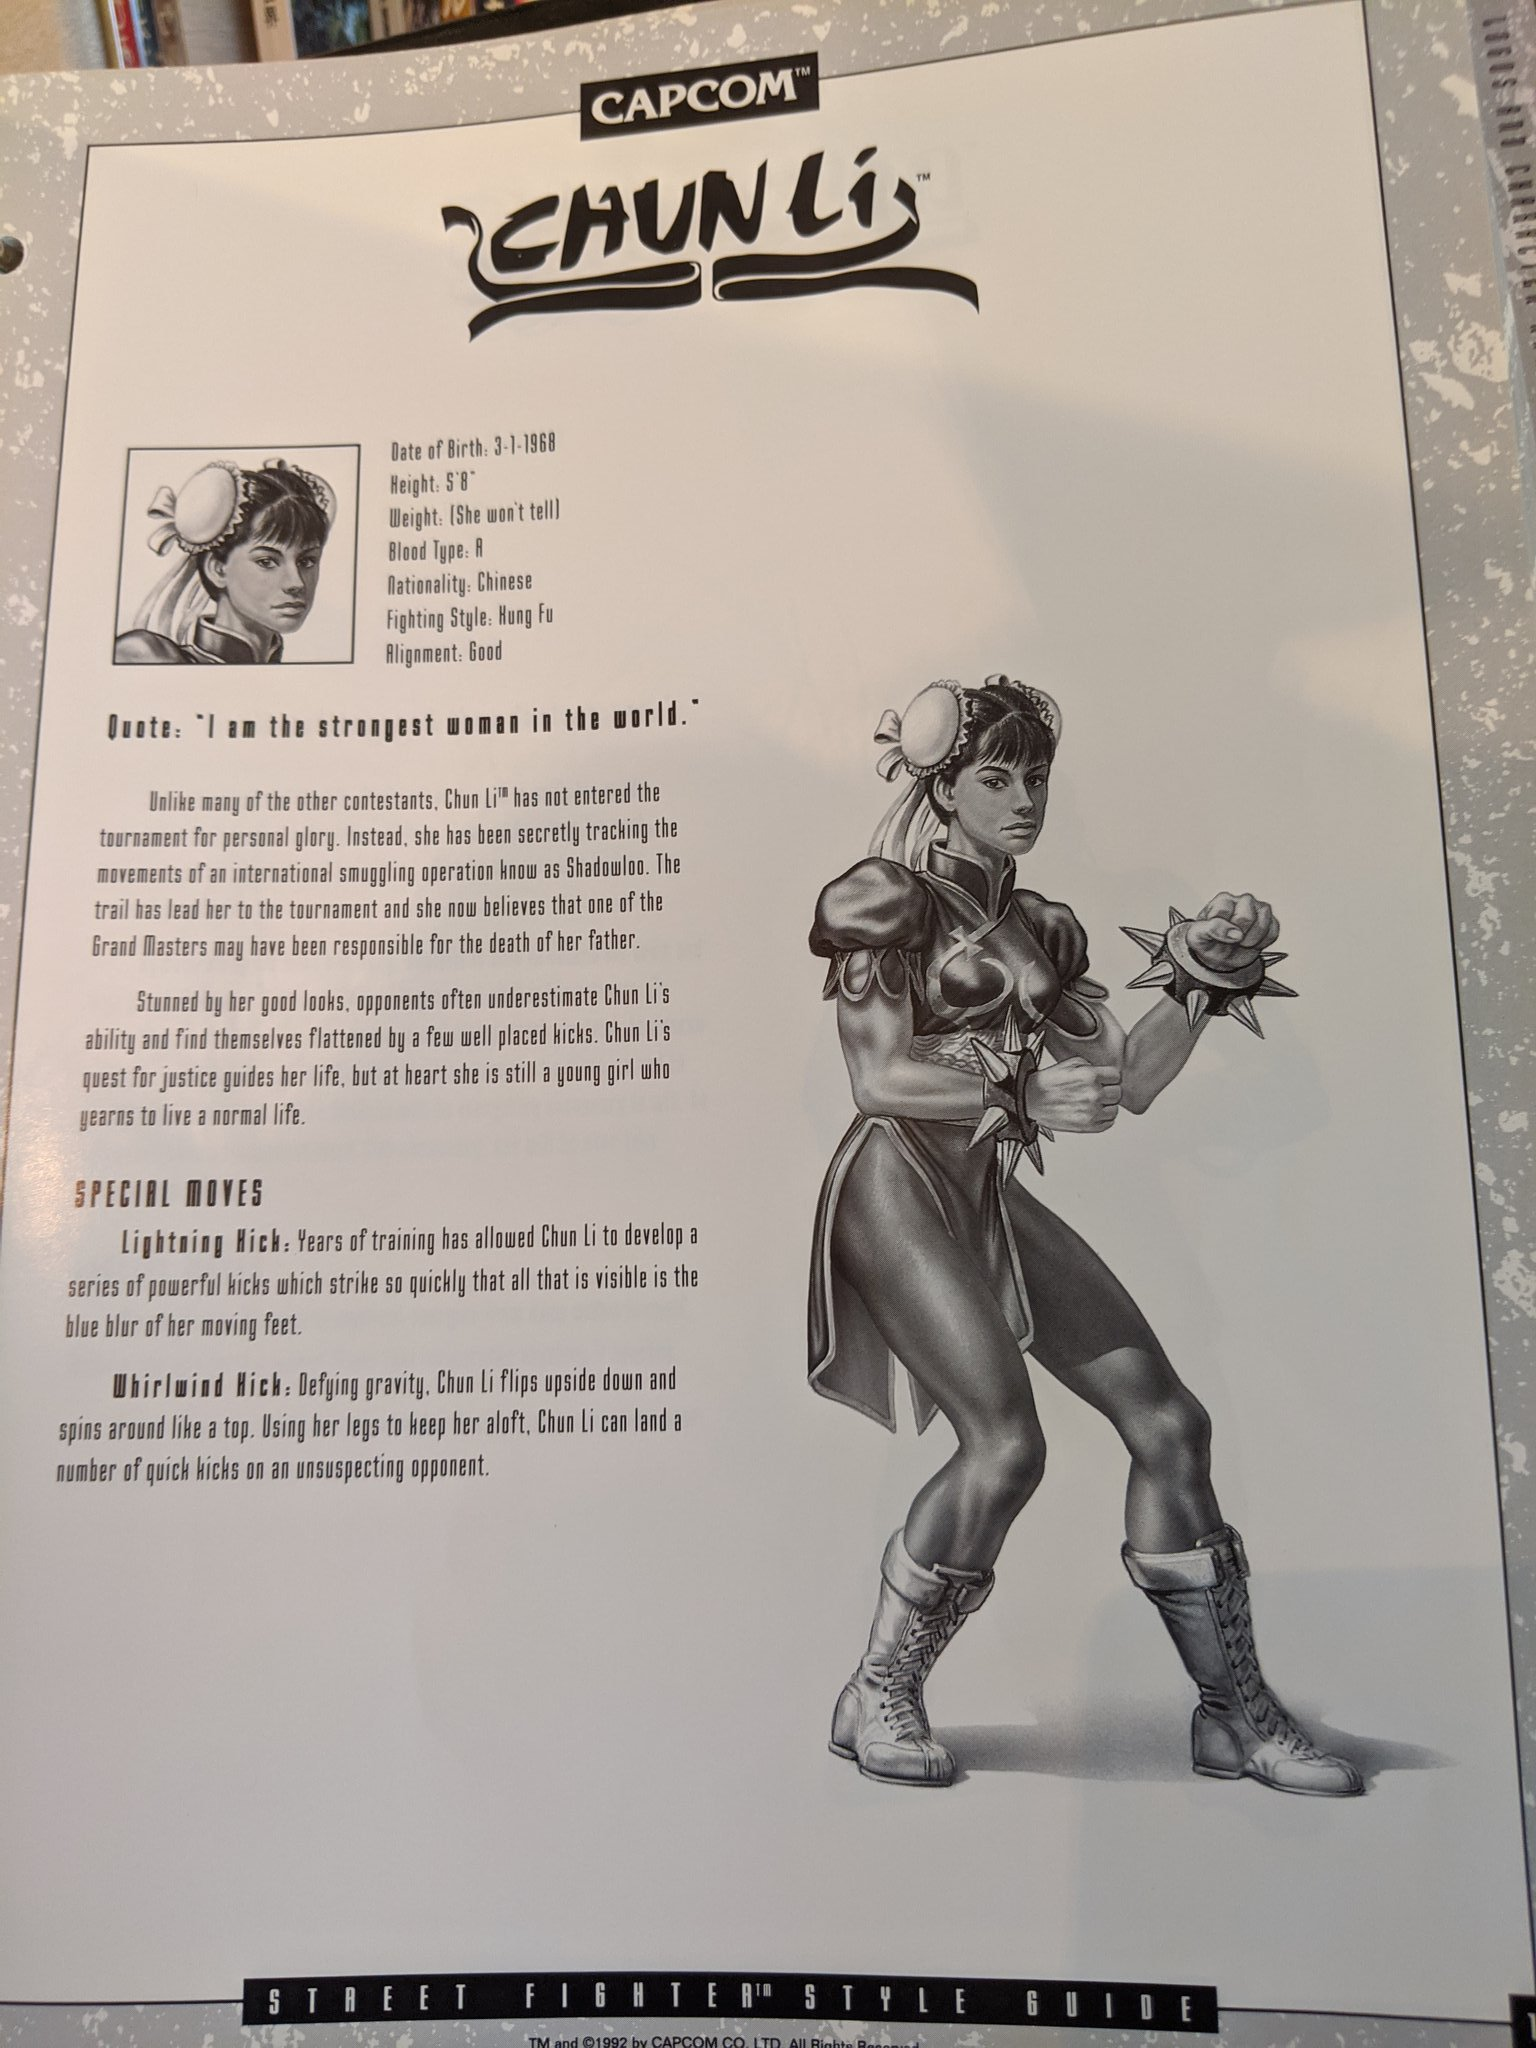 Street Fighter 2 North American Manual Art Bios